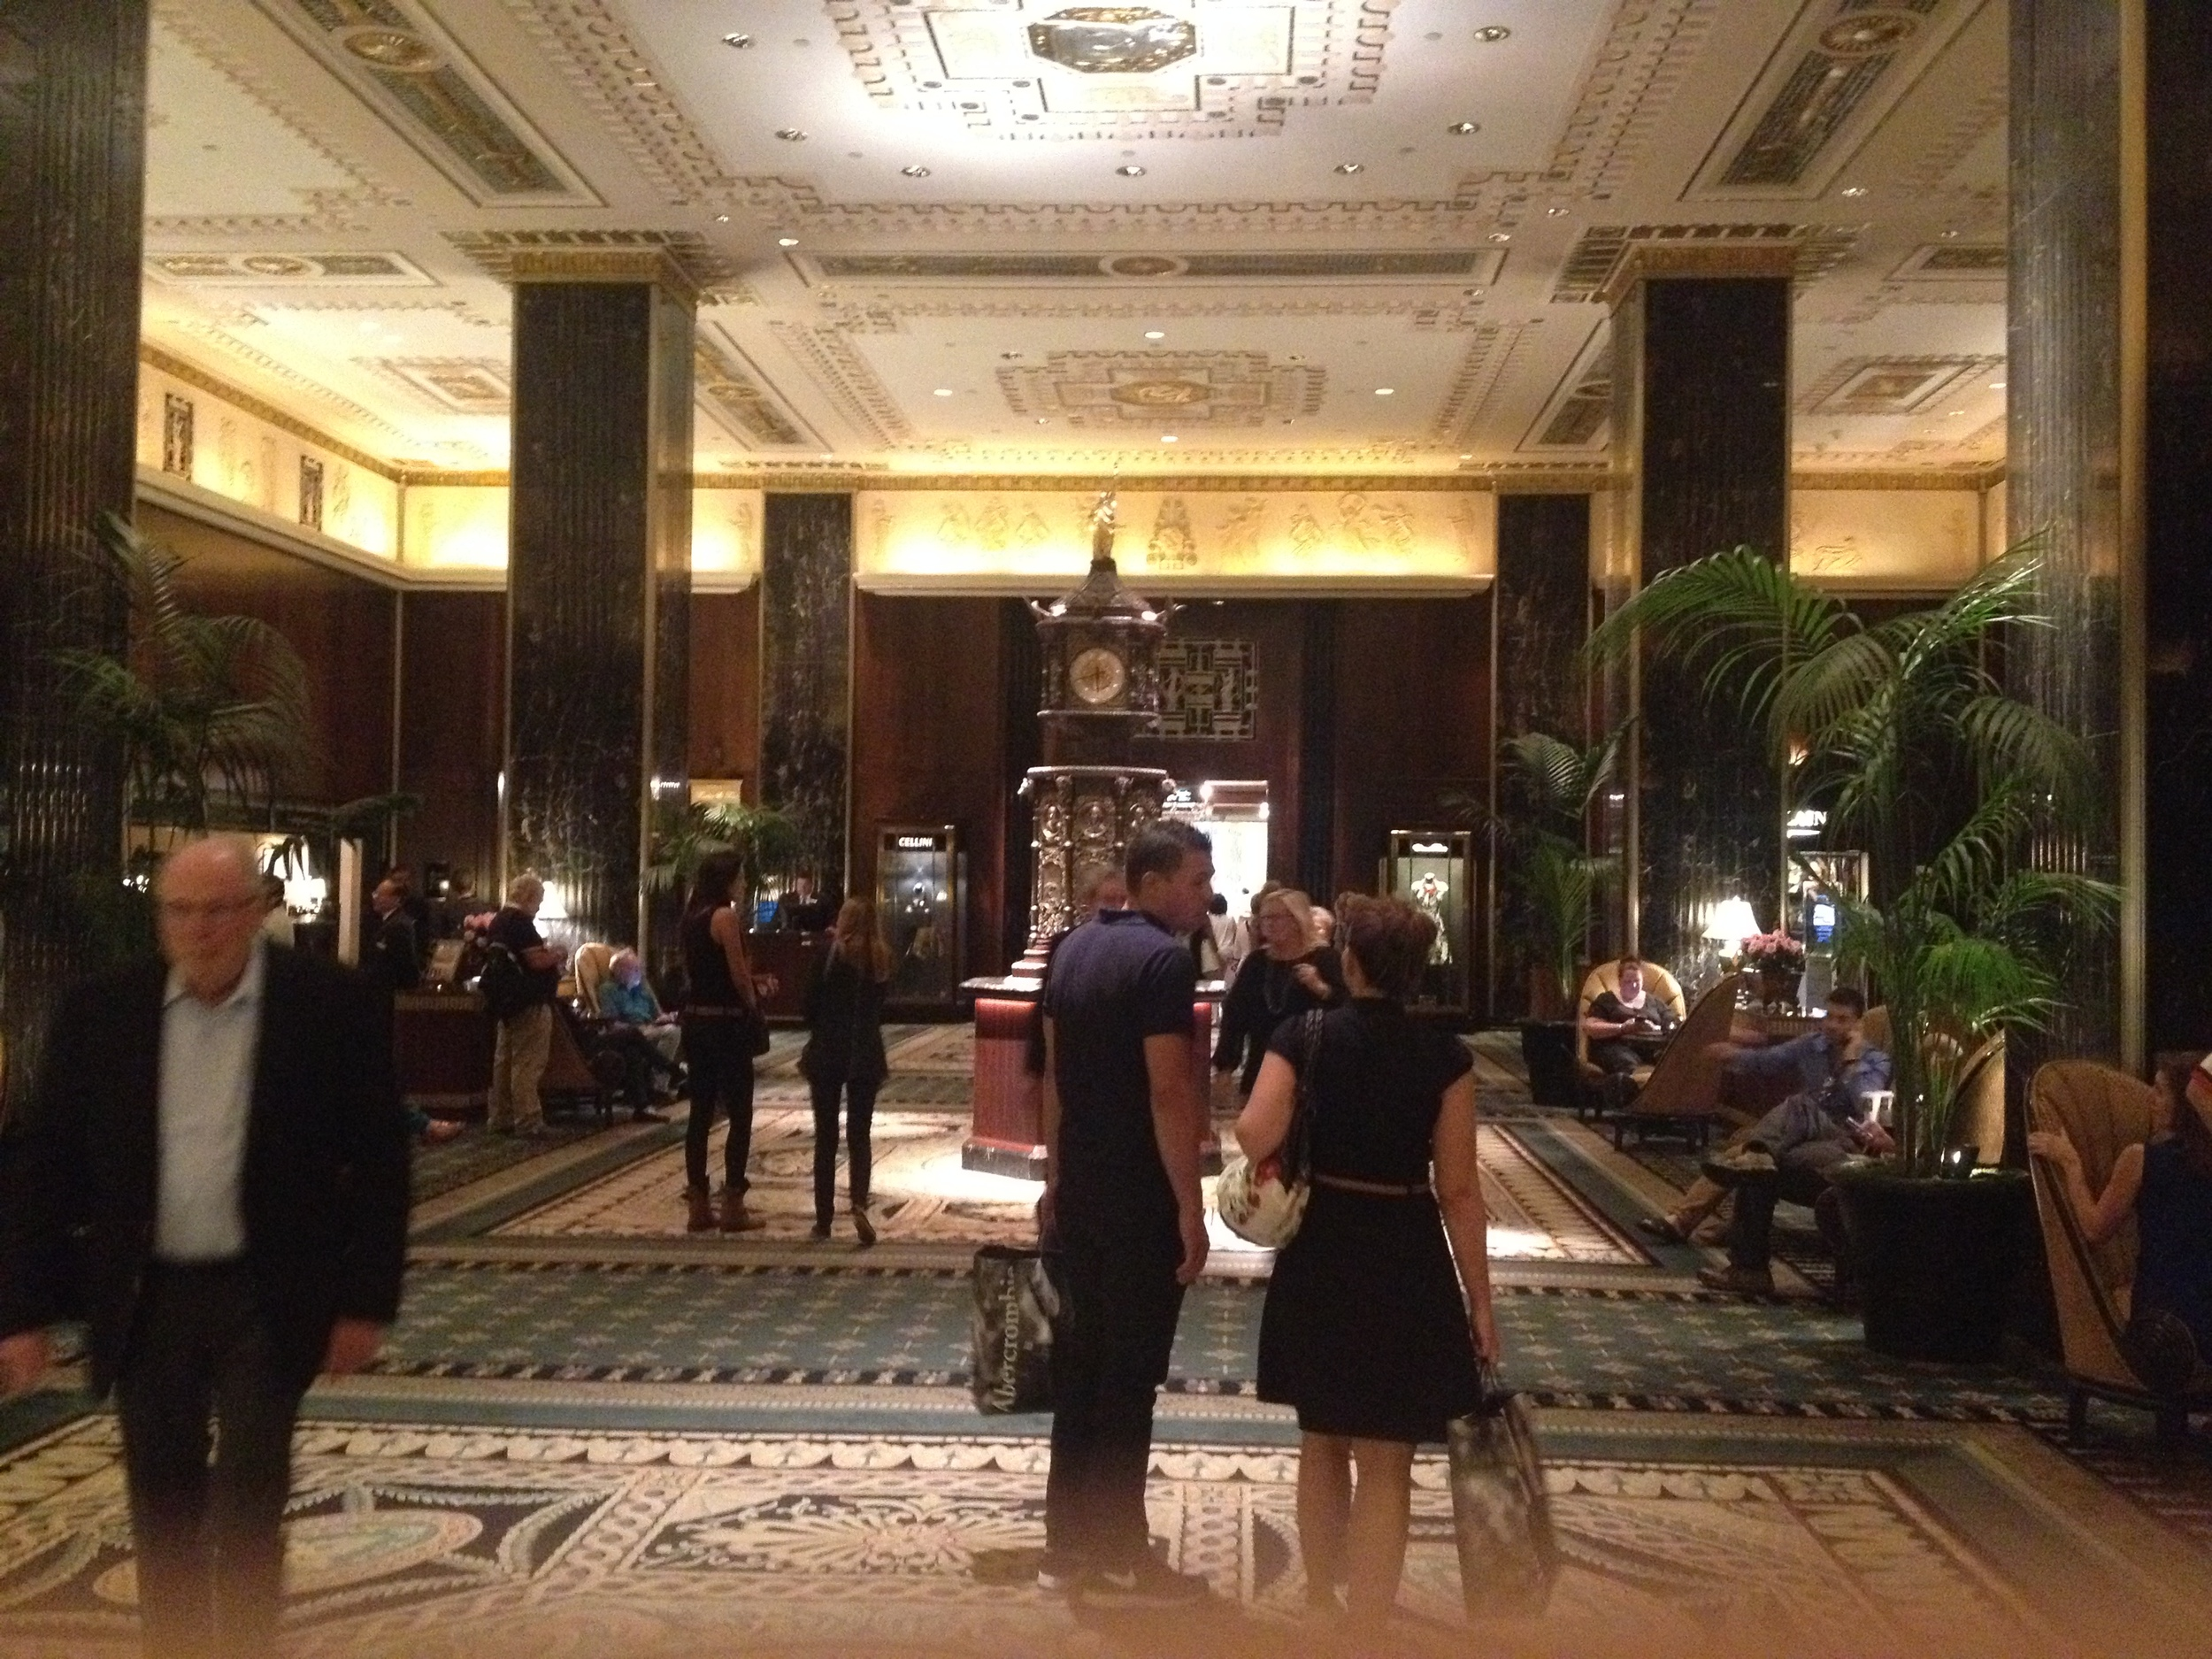 Waldorf lobby.  Different world.  Drinks here start at $18/per.  Yay, Priceline!